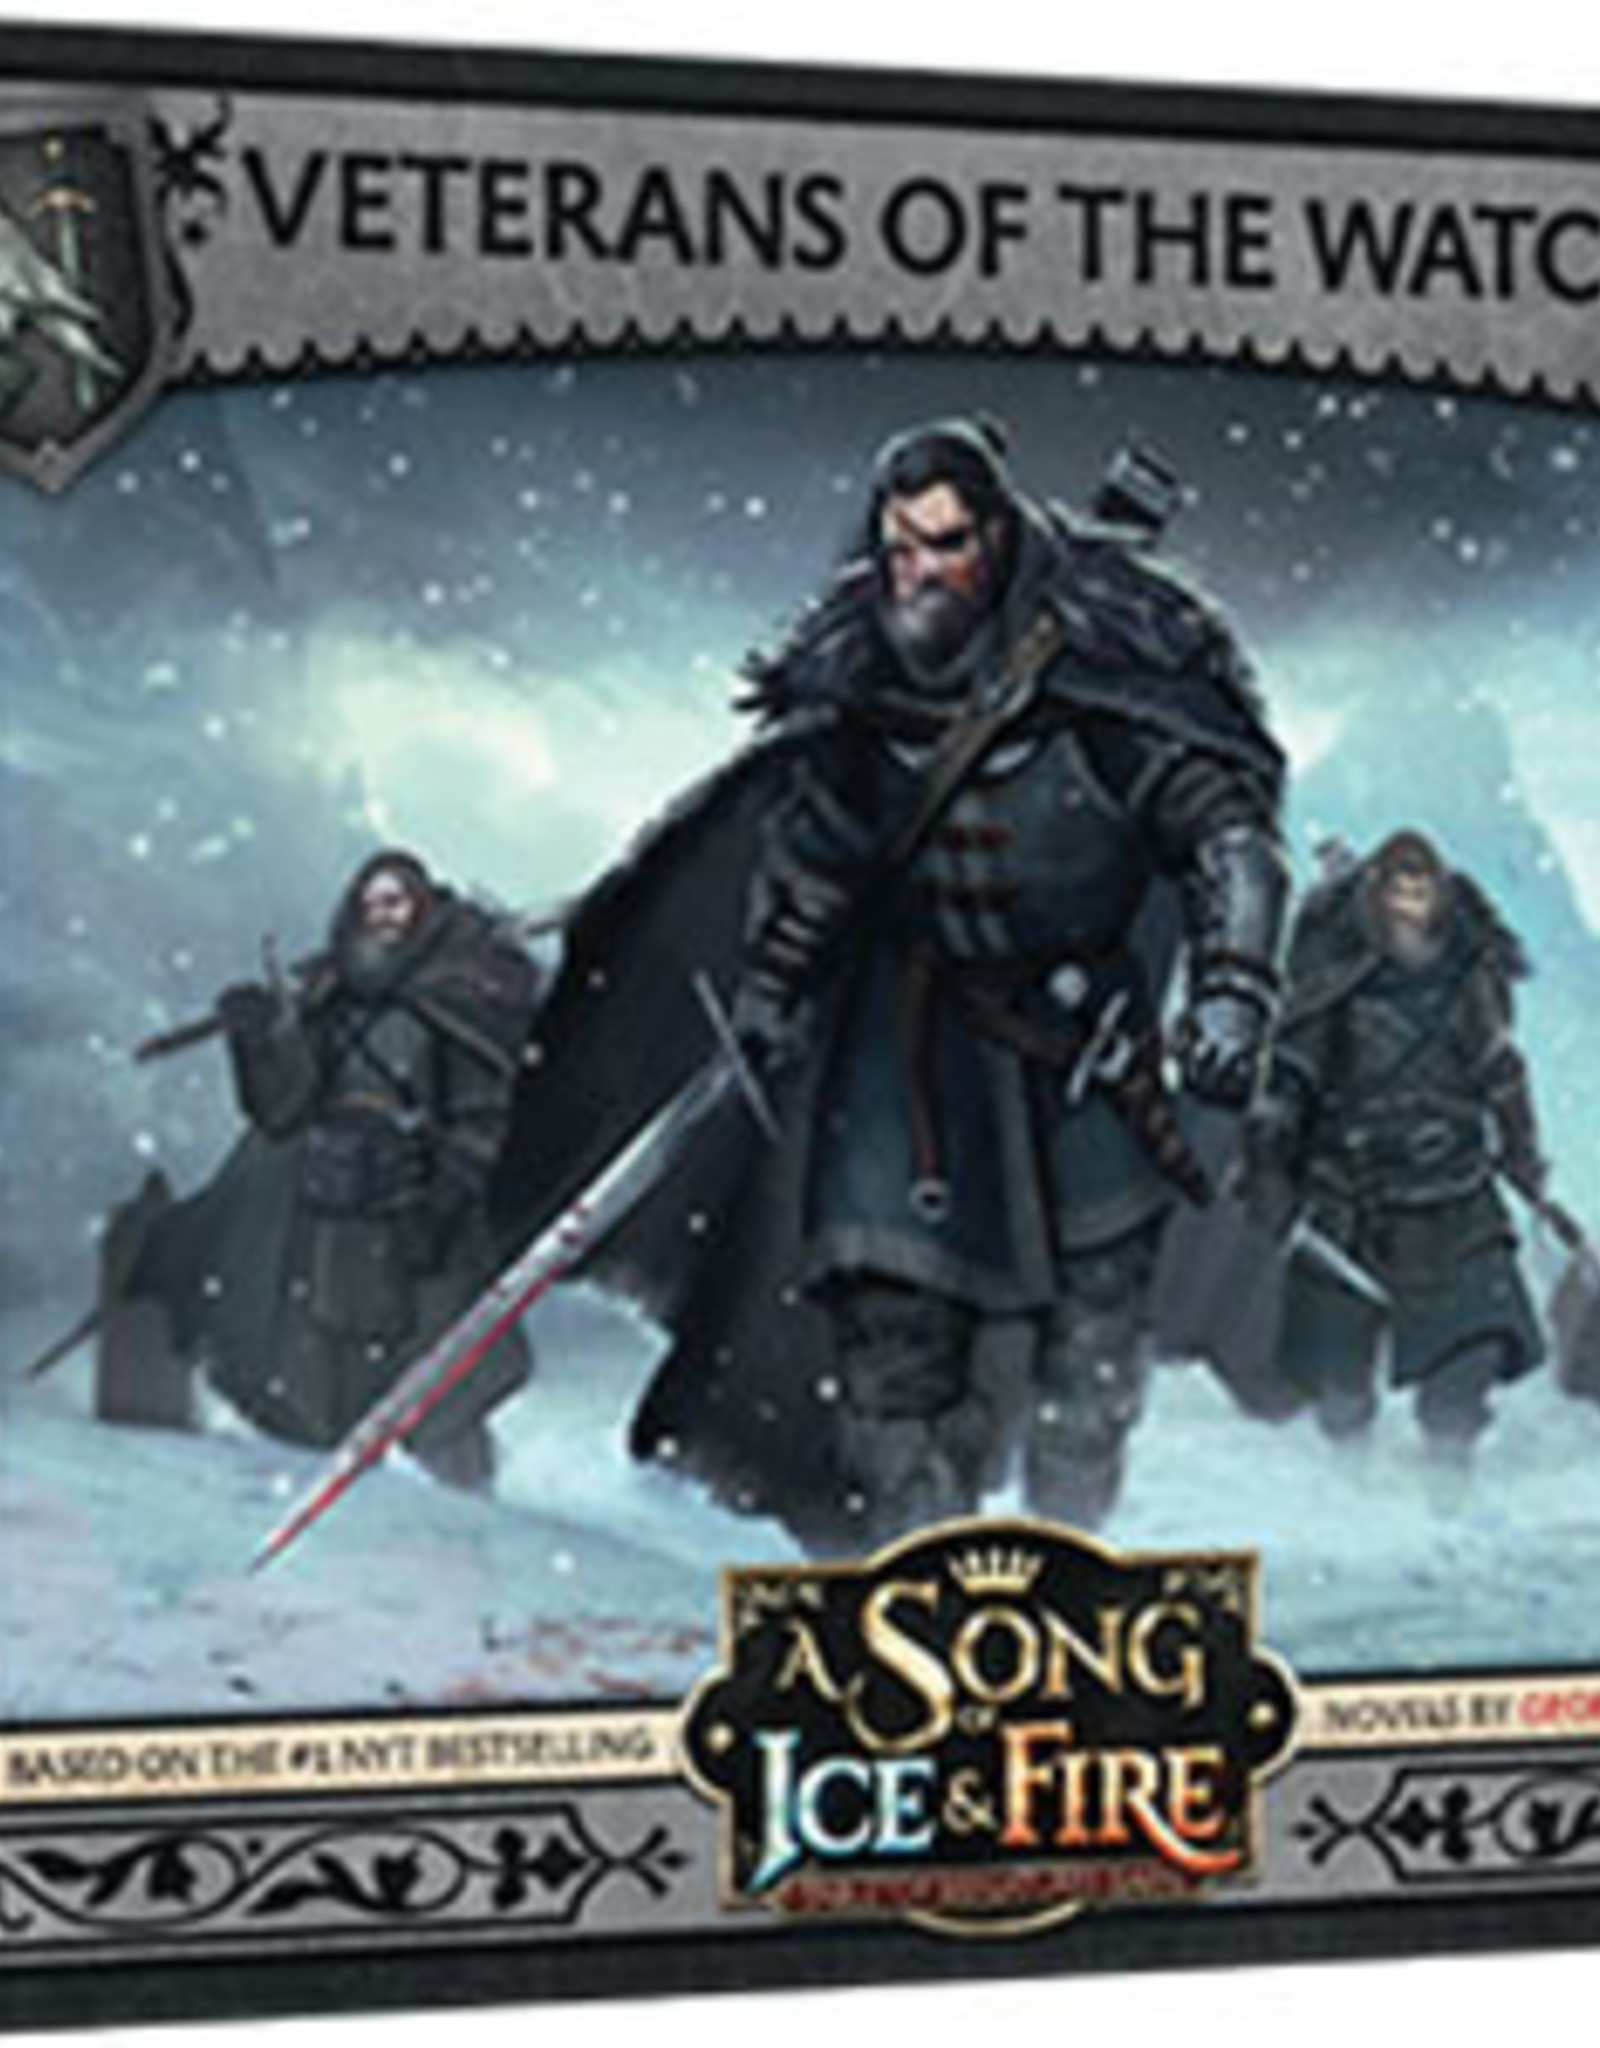 A Song of Ice & Fire: Tabletop Miniatures Game: Night's Watch Veterans of the Watch Unit Box